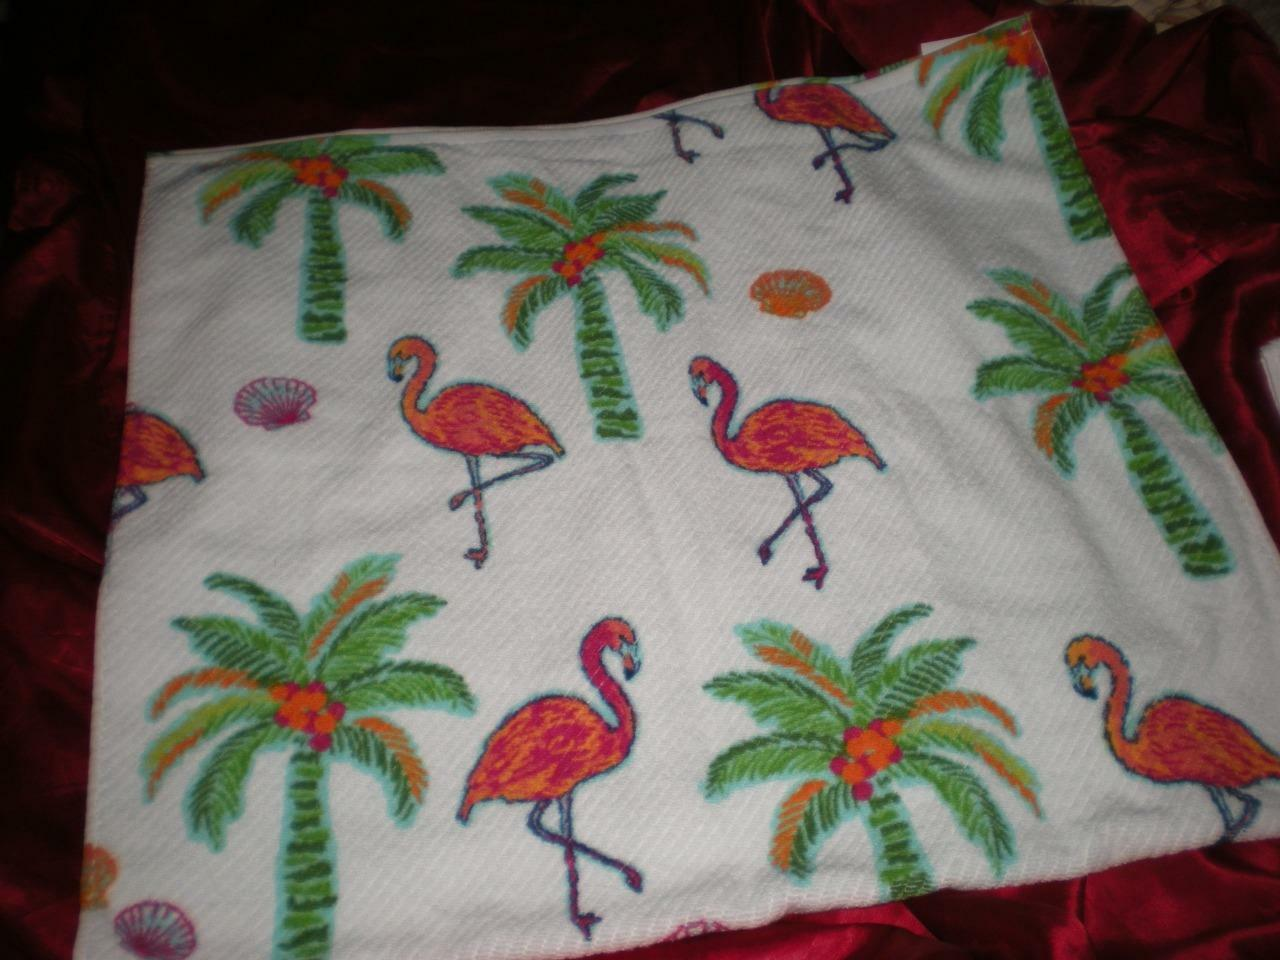 TROPICAL Rosa FLAMINGO 3 3 3 PC MULTI-Farbe 100% COTTON BATH ROOM TOWEL SET 896fbd